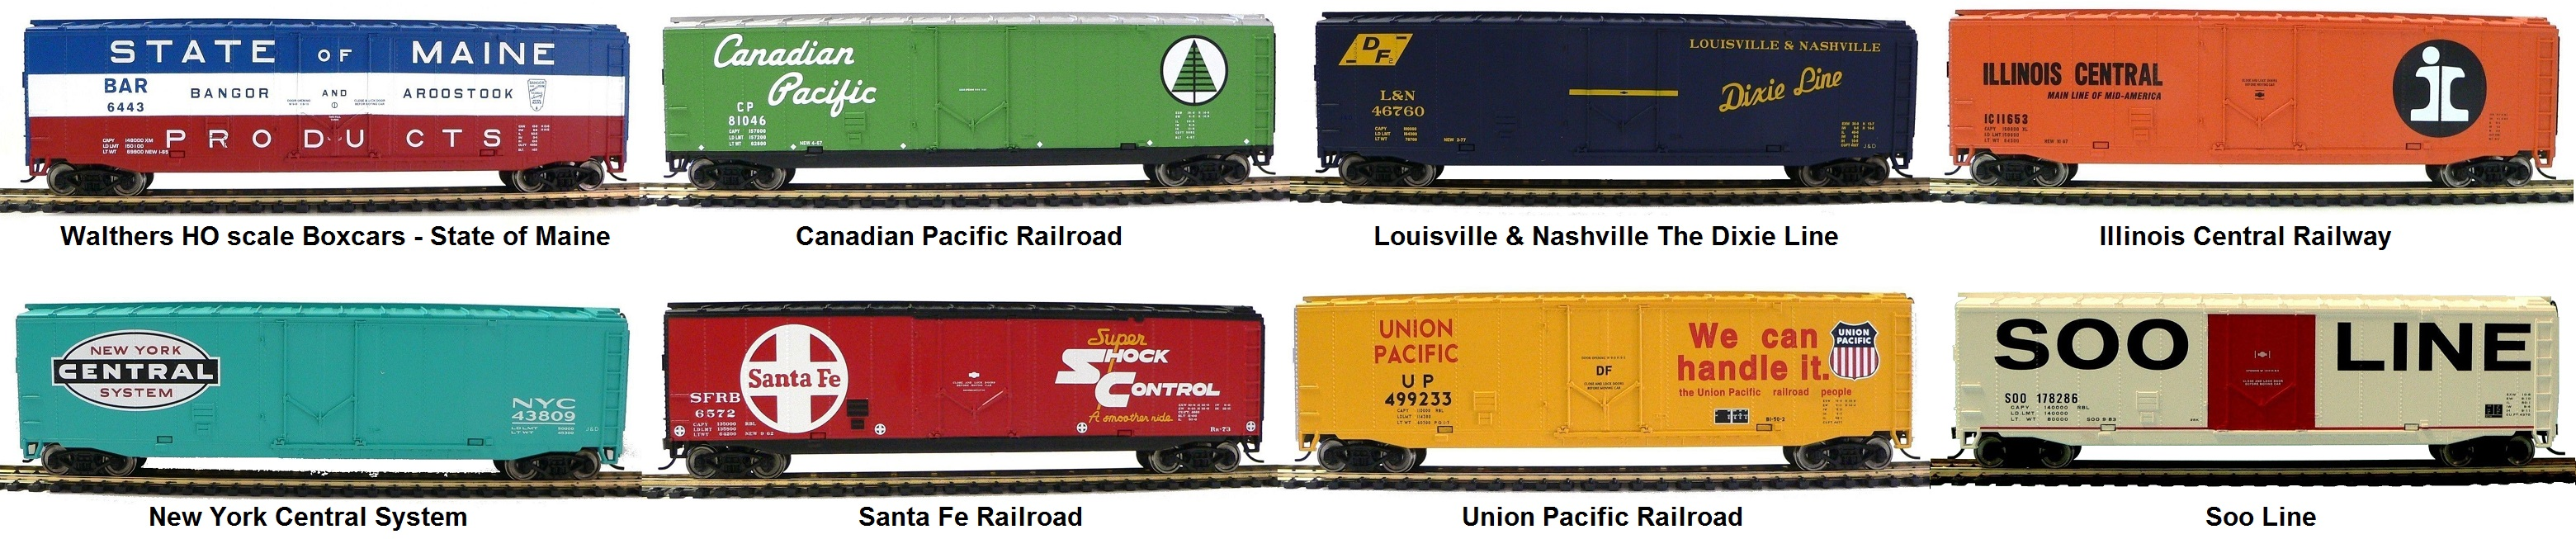 Walther's HO scale boxcars